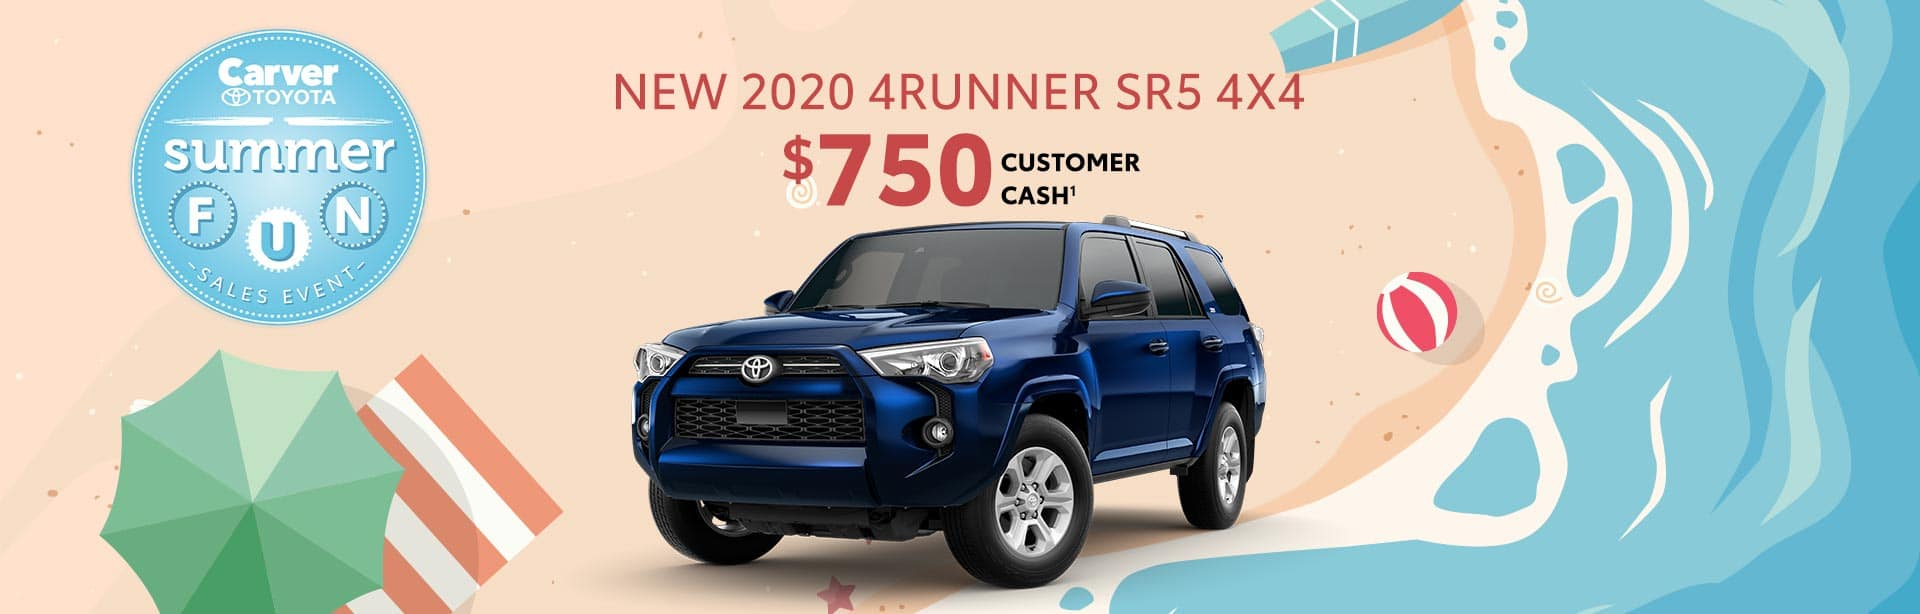 $750 Customer cash when you buy a new 4Runner near Franklin, Indiana